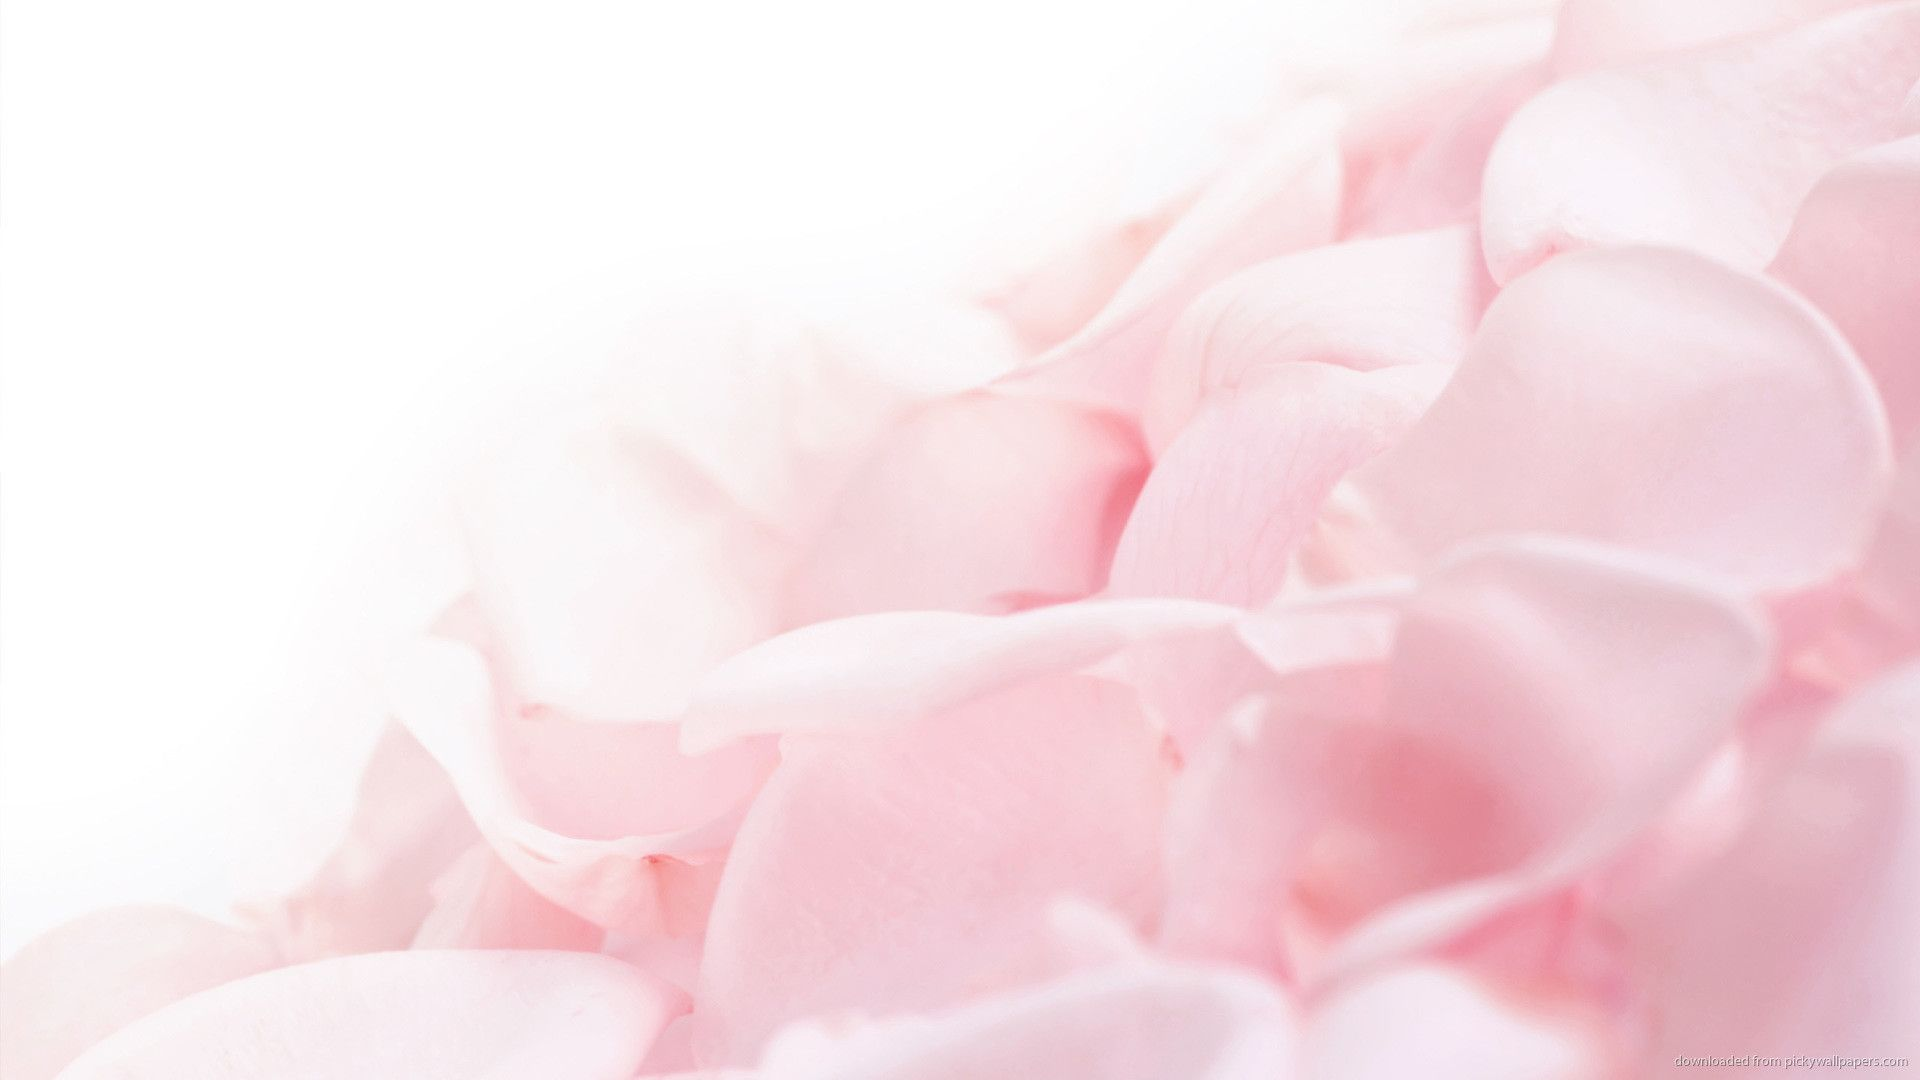 1920x1080 1440x900 Pink Flower Petals Wallpaper Background